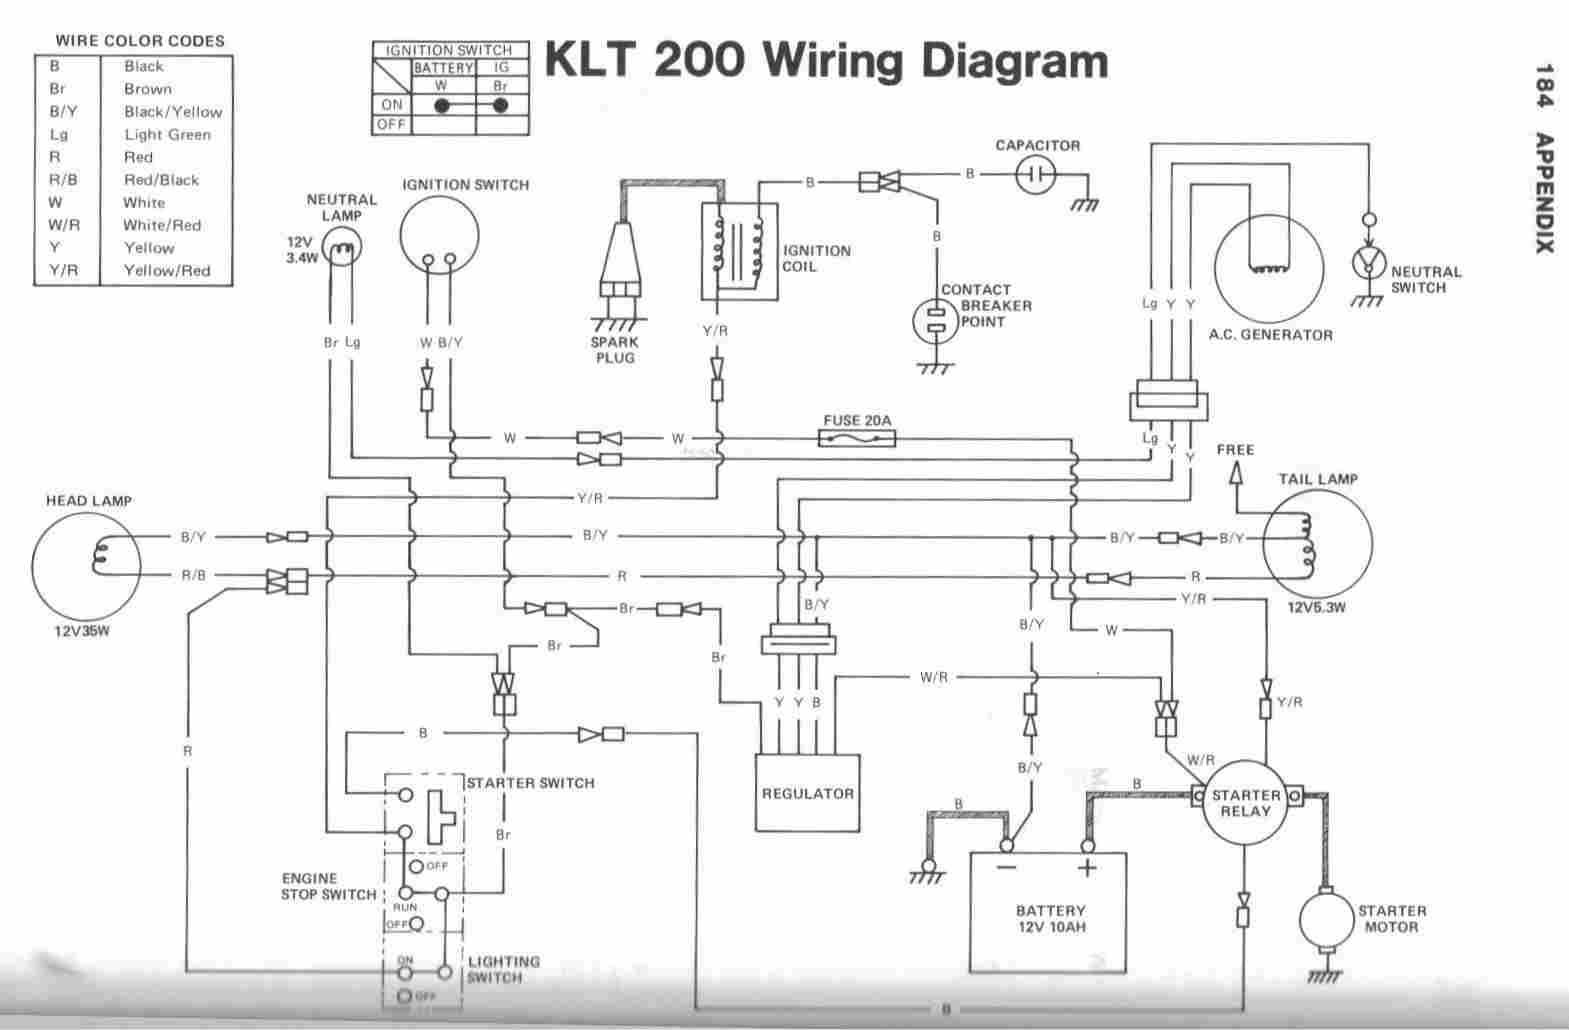 2869034594ce054a636782e5c44b61b4 residential electrical wiring diagrams pdf easy routing cool electrical wiring circuit diagram at crackthecode.co